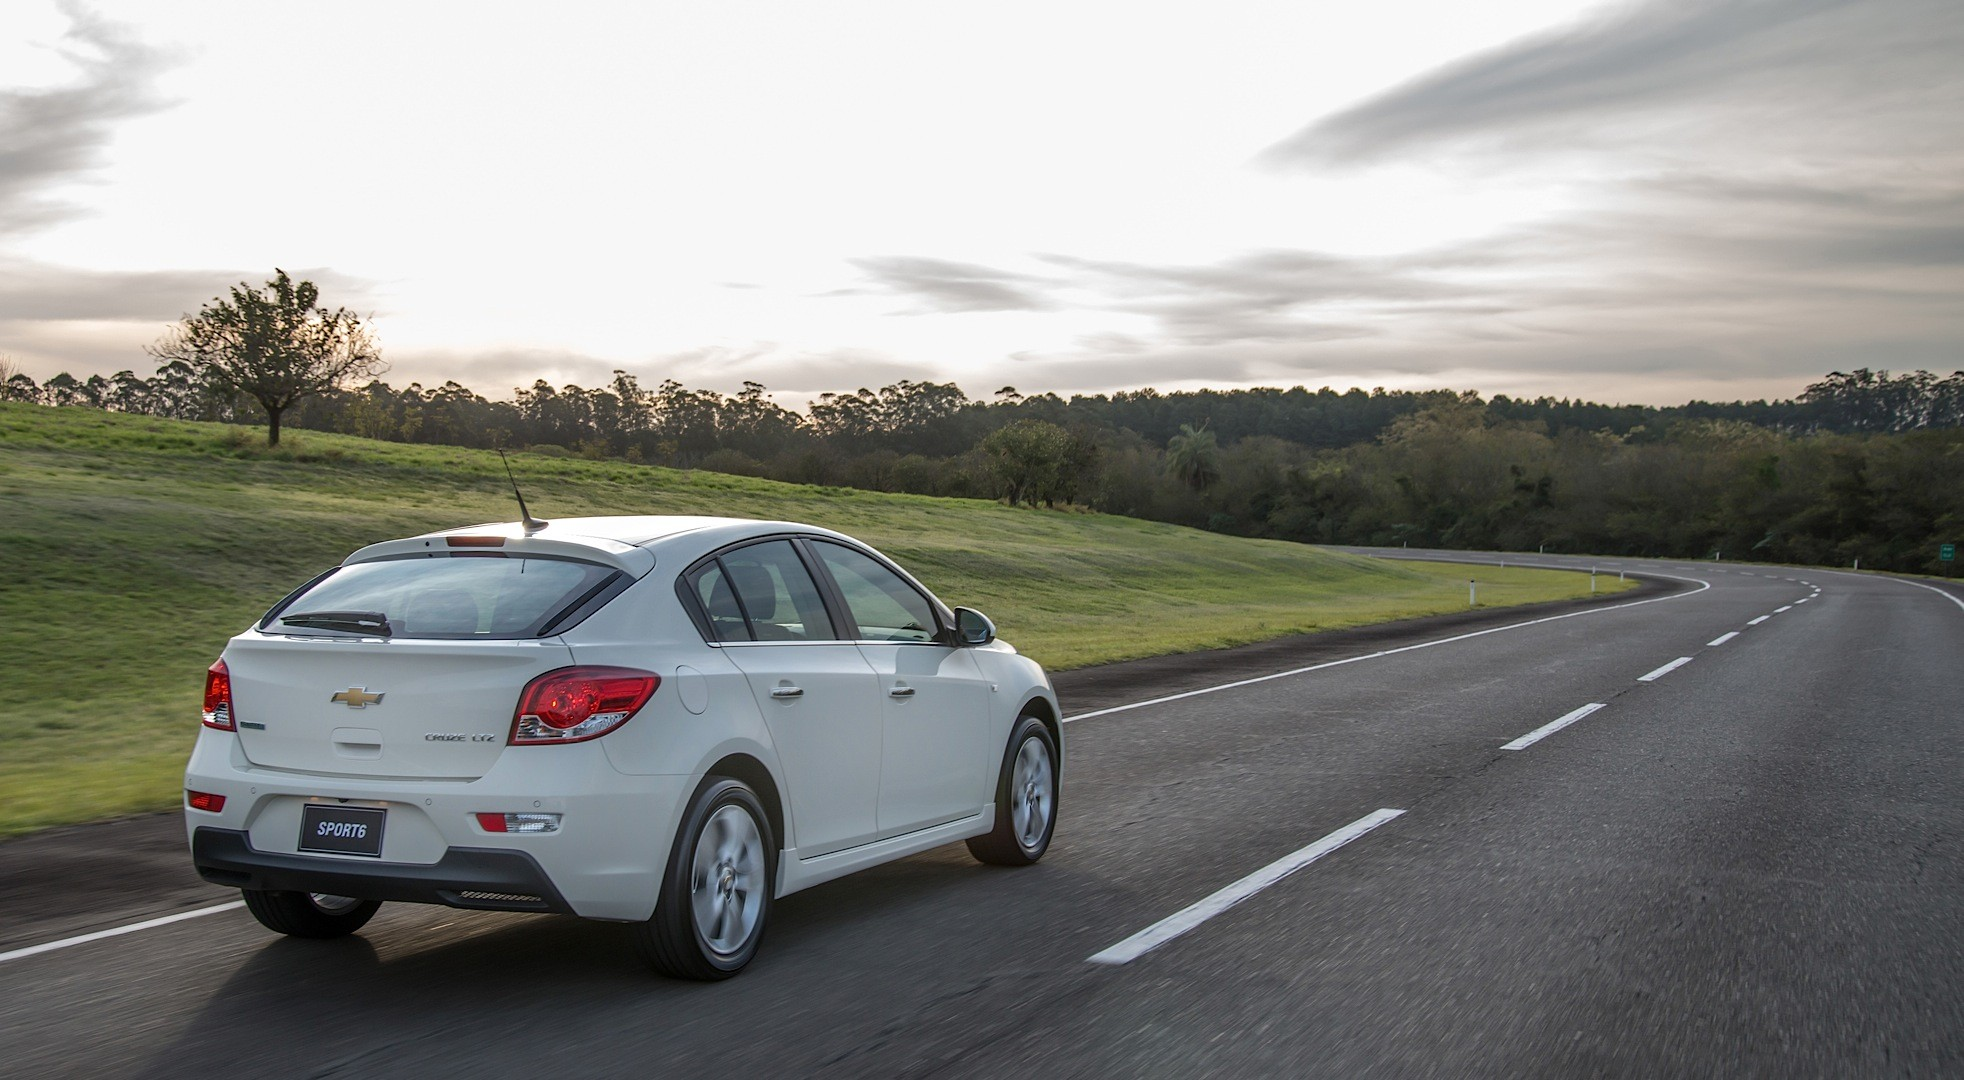 2015 Chevrolet Cruze Sport6 Hatch Launched in Brazil ...